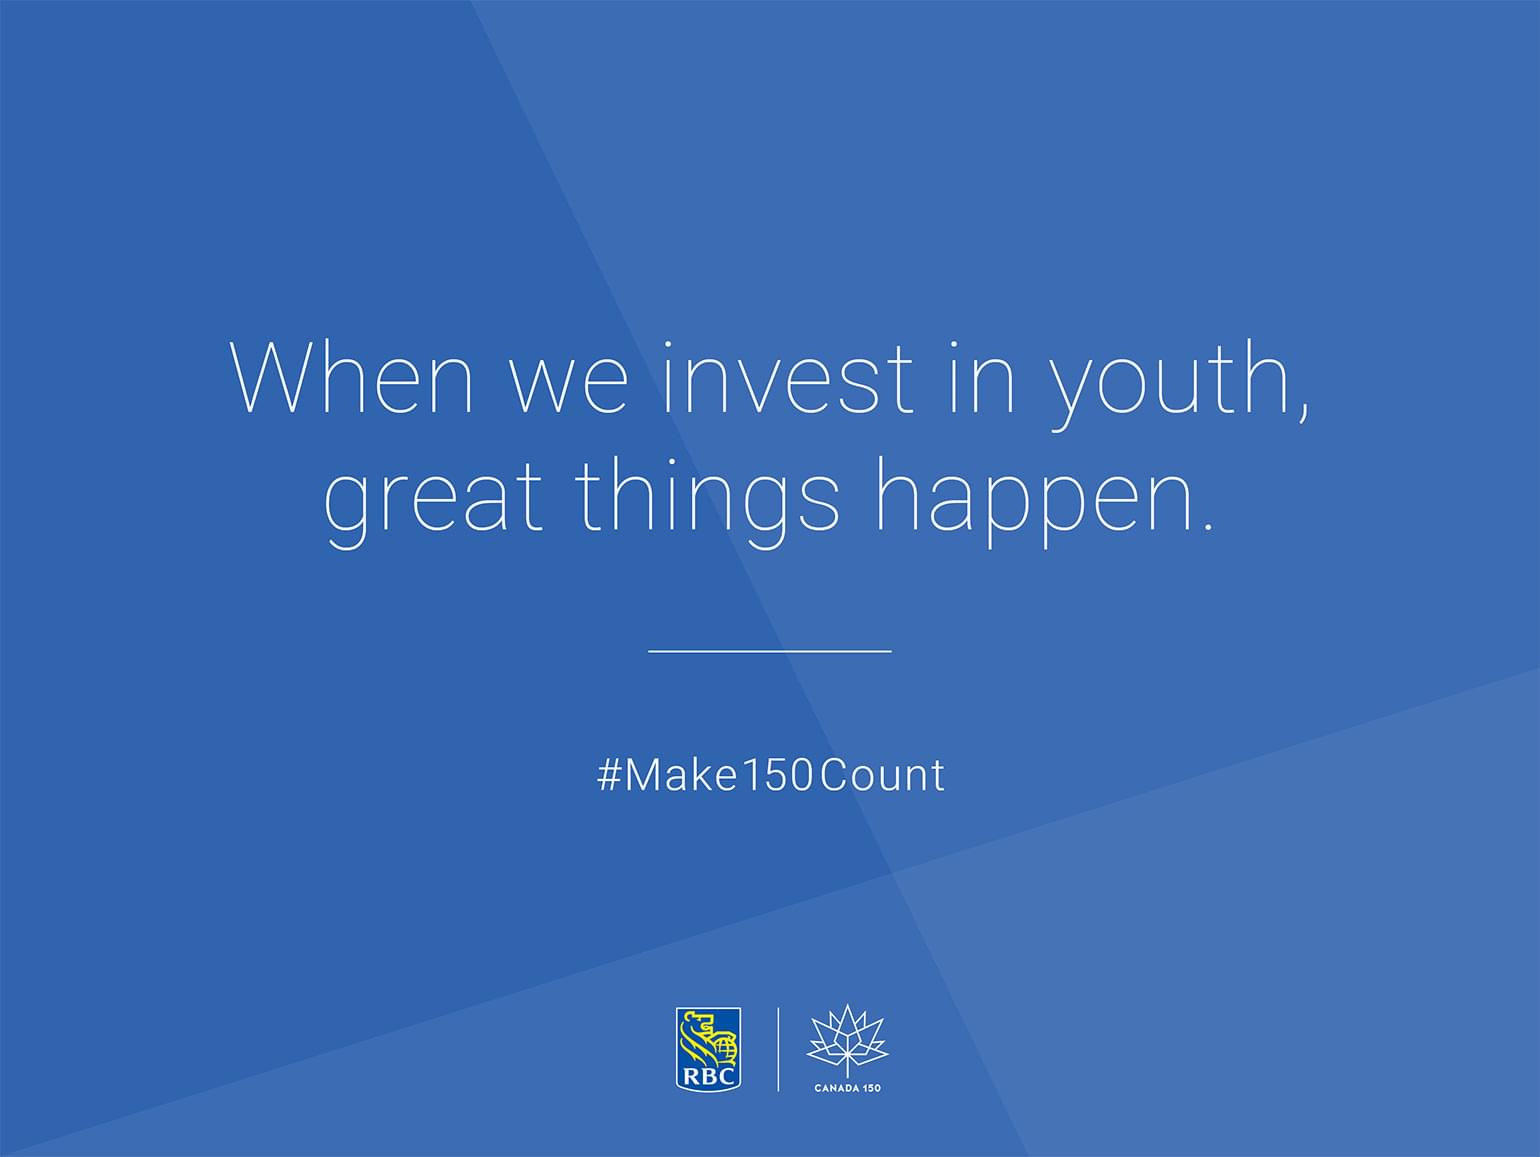 When we invest in youth, great things happen. #Make150Count.